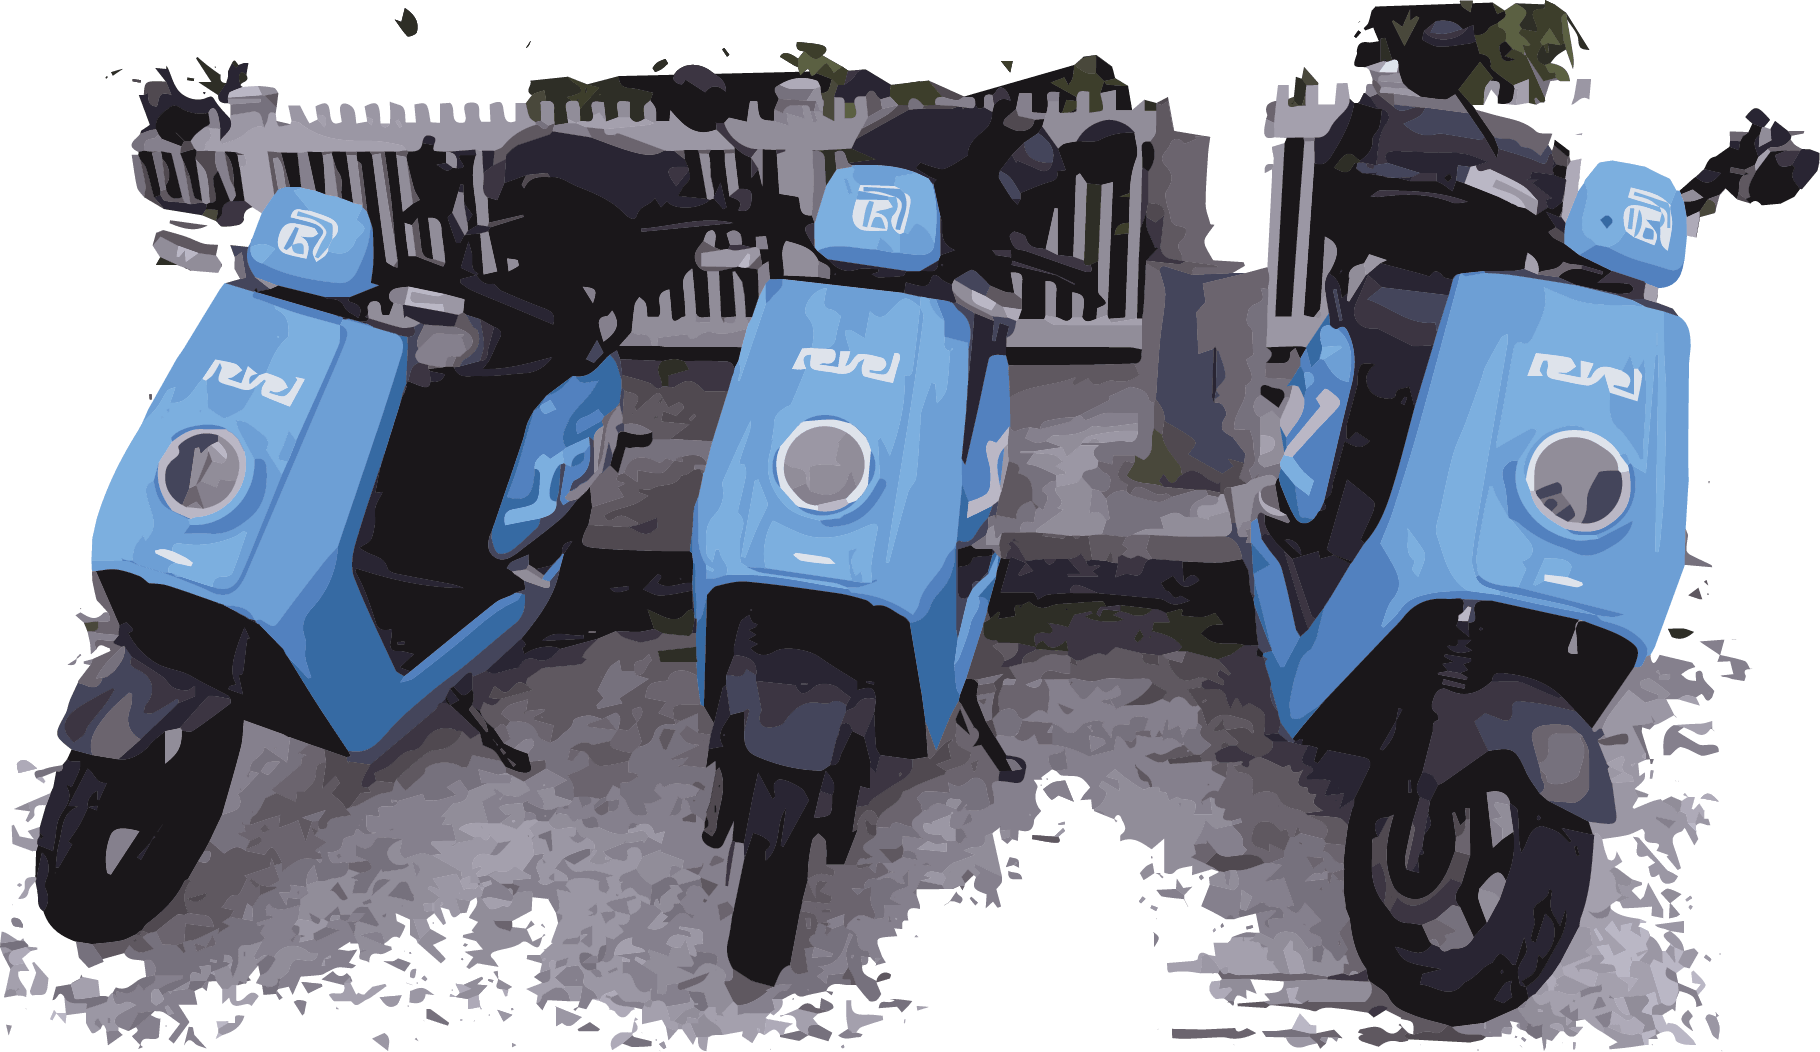 An image of 3 Revel scooters parked in a row